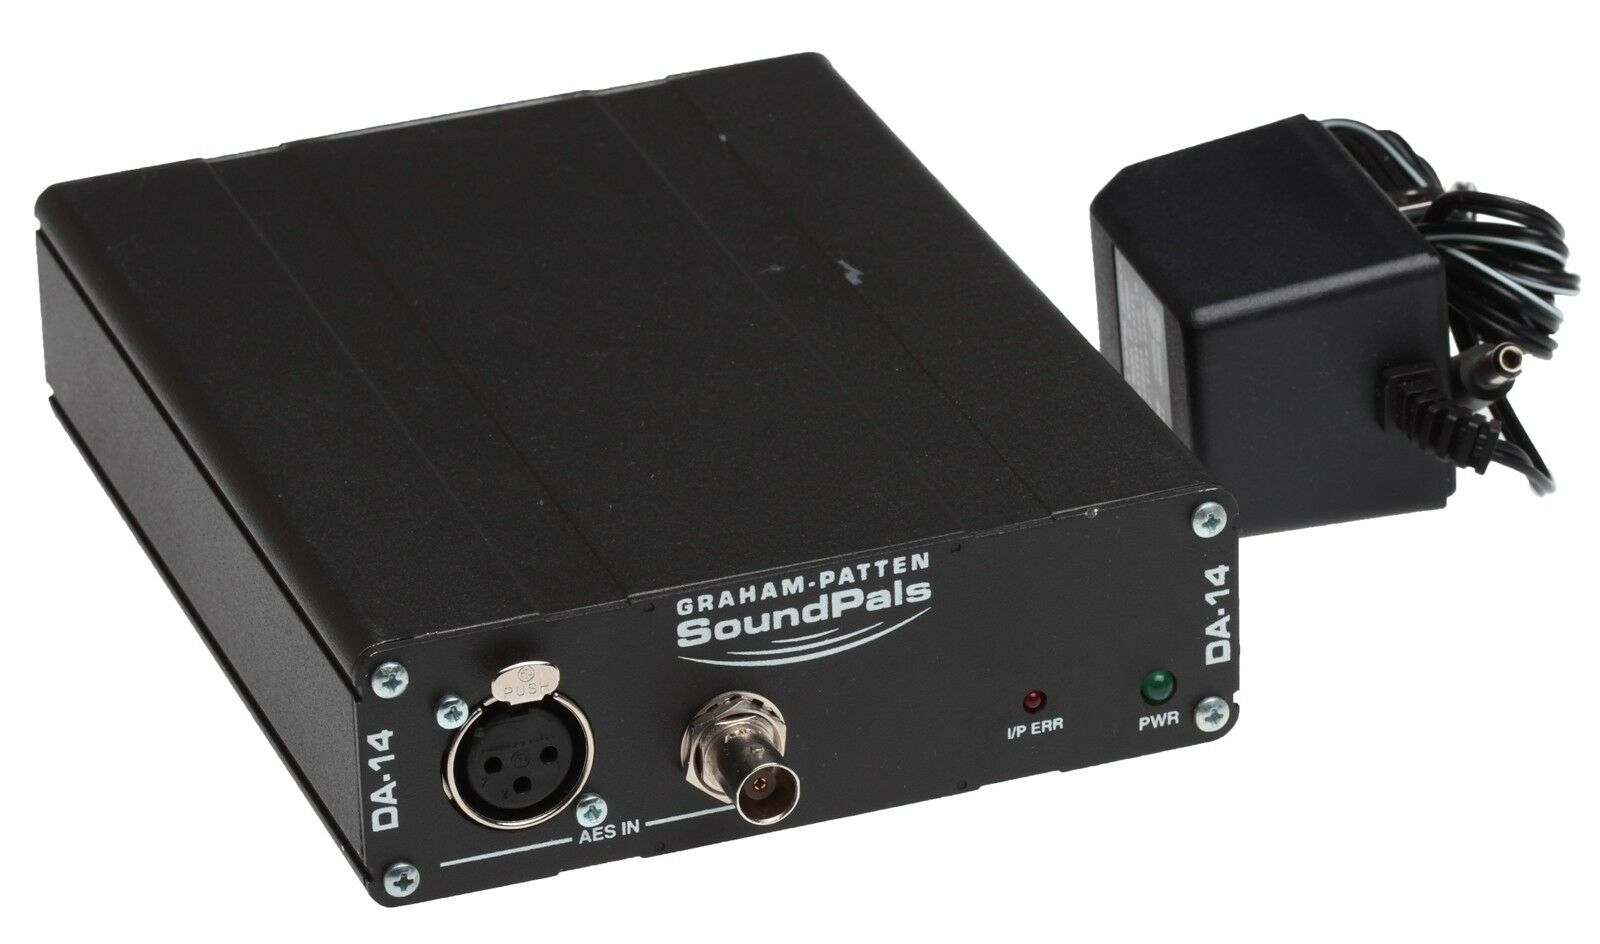 Graham Patten SoundPals DA-14 AES PDIF 1x4 BNC Digital Audio Distribution Amp